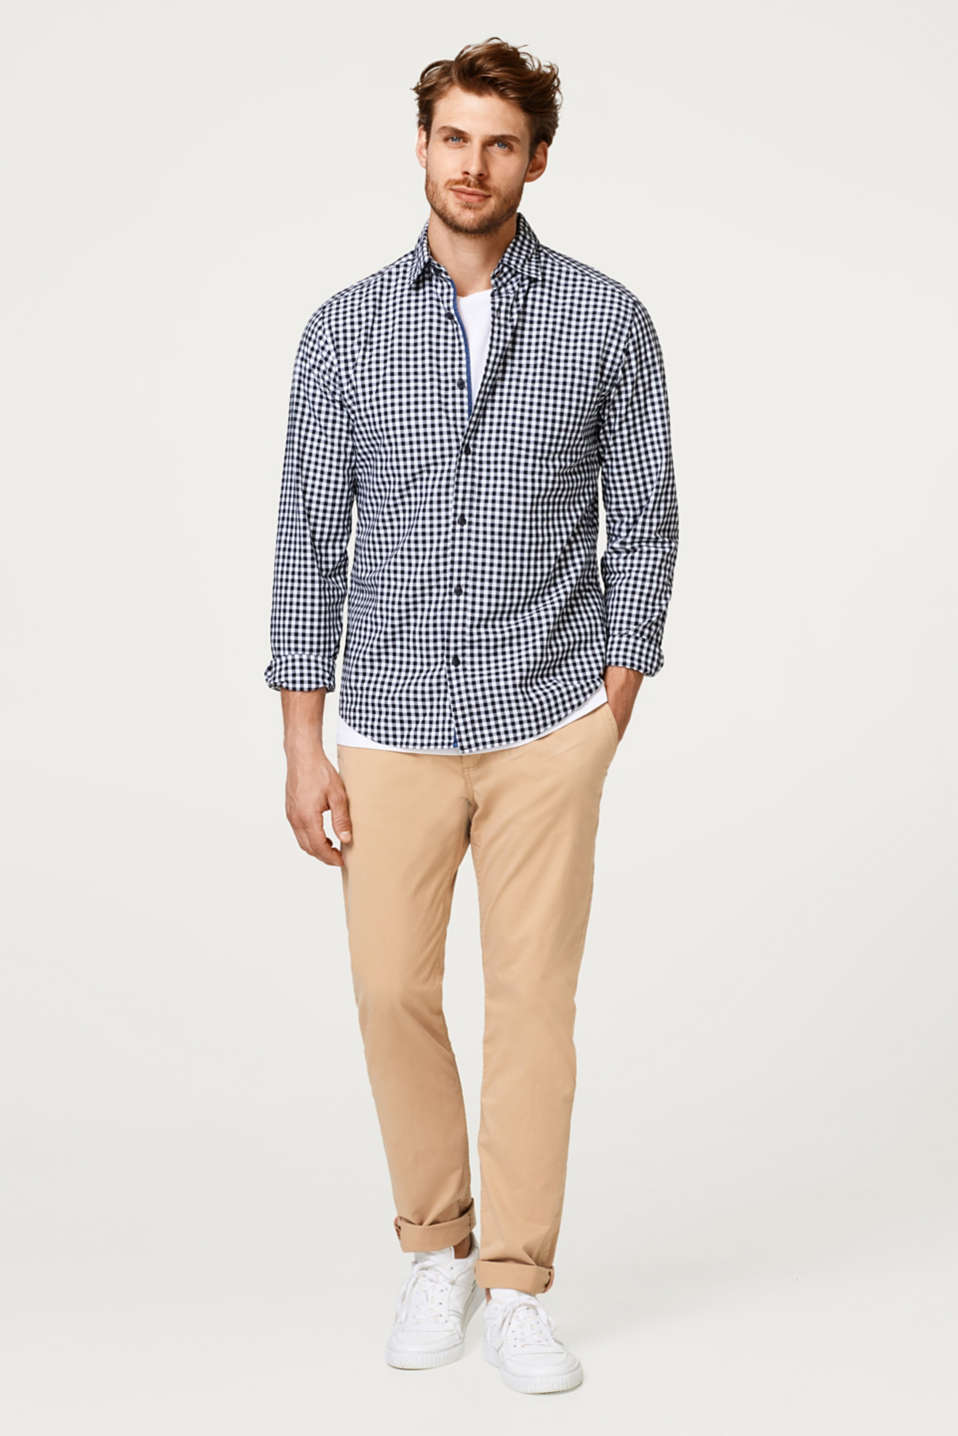 Lightweight check shirt in smooth cotton fabric